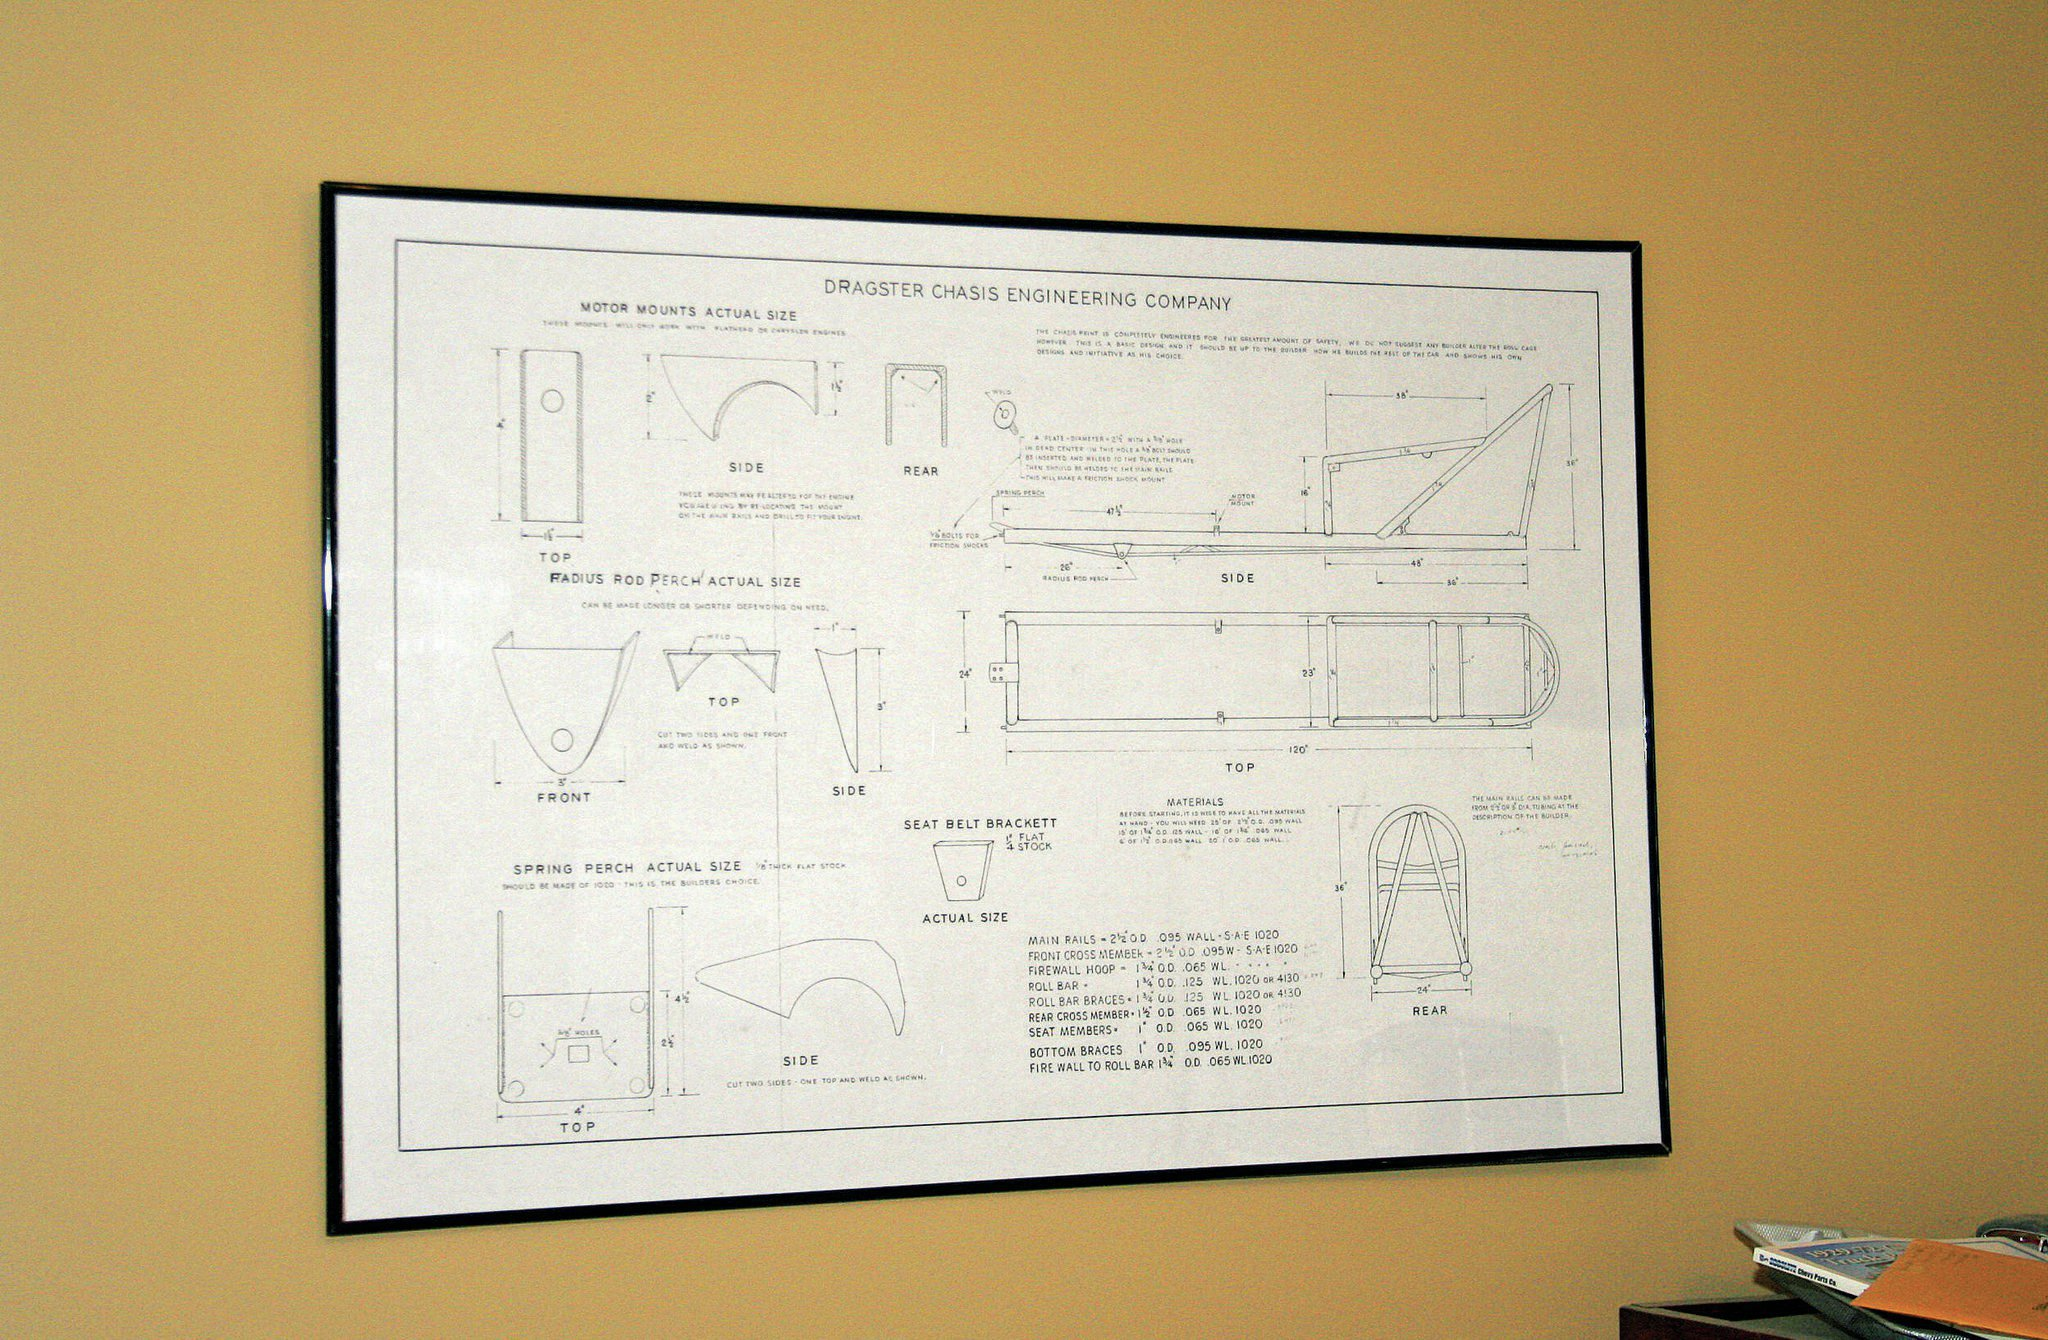 A couple years ago, we bought this fullsize reprint of a Dragster Chassis Engineering Company blueprint that you could mail-order in the late '50s. We got the print from our friend Rich Venza, framed it, and hung it in the office. The 78 car was originally a Dave Stuckey chassis, and we learned his designs heavily borrowed from several other manufacturers—particularly Dragster Chassis Engineering. Comparing the photo of the original 78 car to the blueprint, we saw it was about the same chassis, at least from the firewall forward, so we took the blueprint off the wall and went to work.